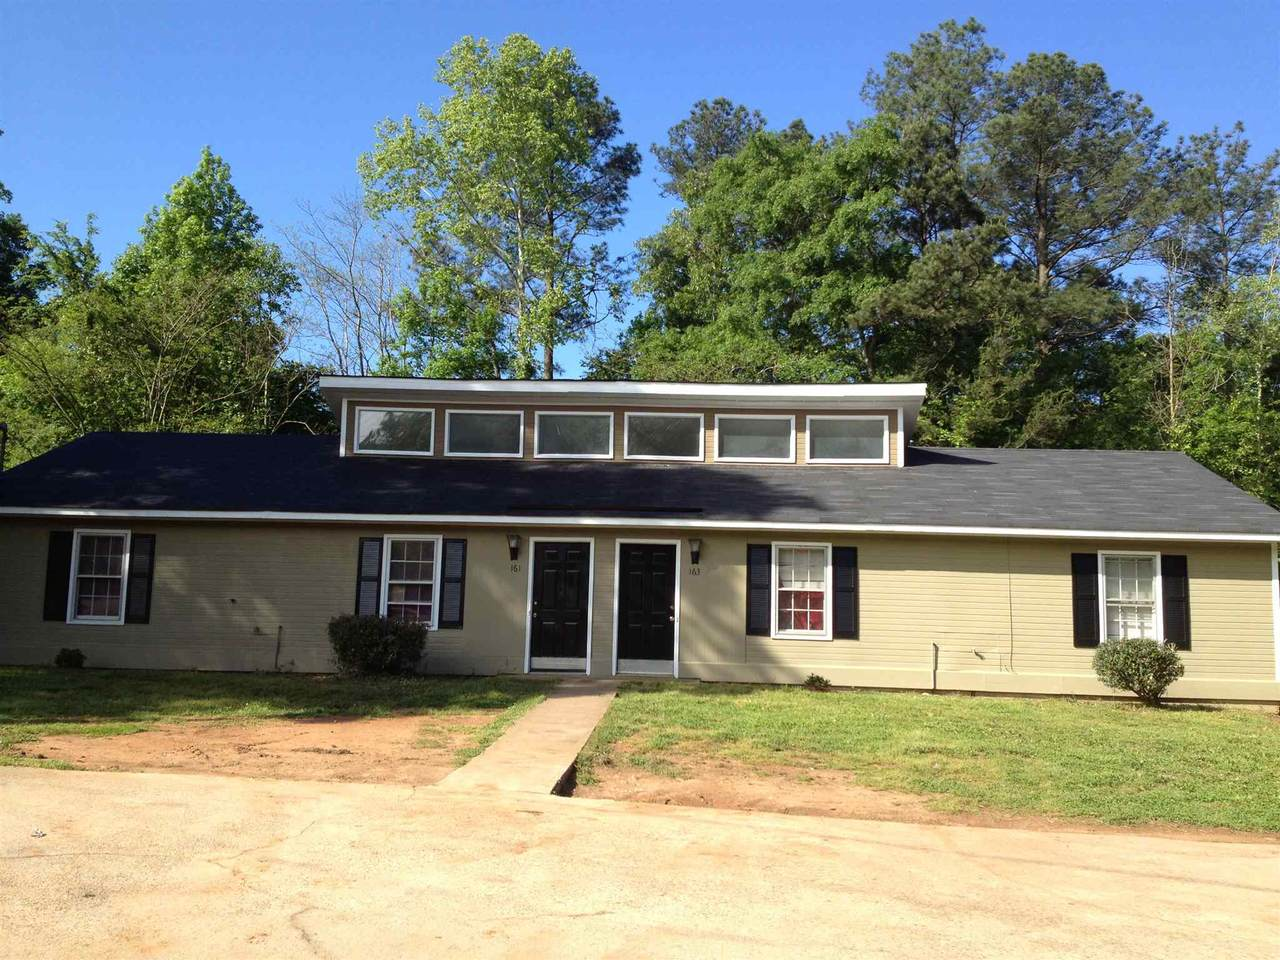 105 Loblolly Dr - Photo 1